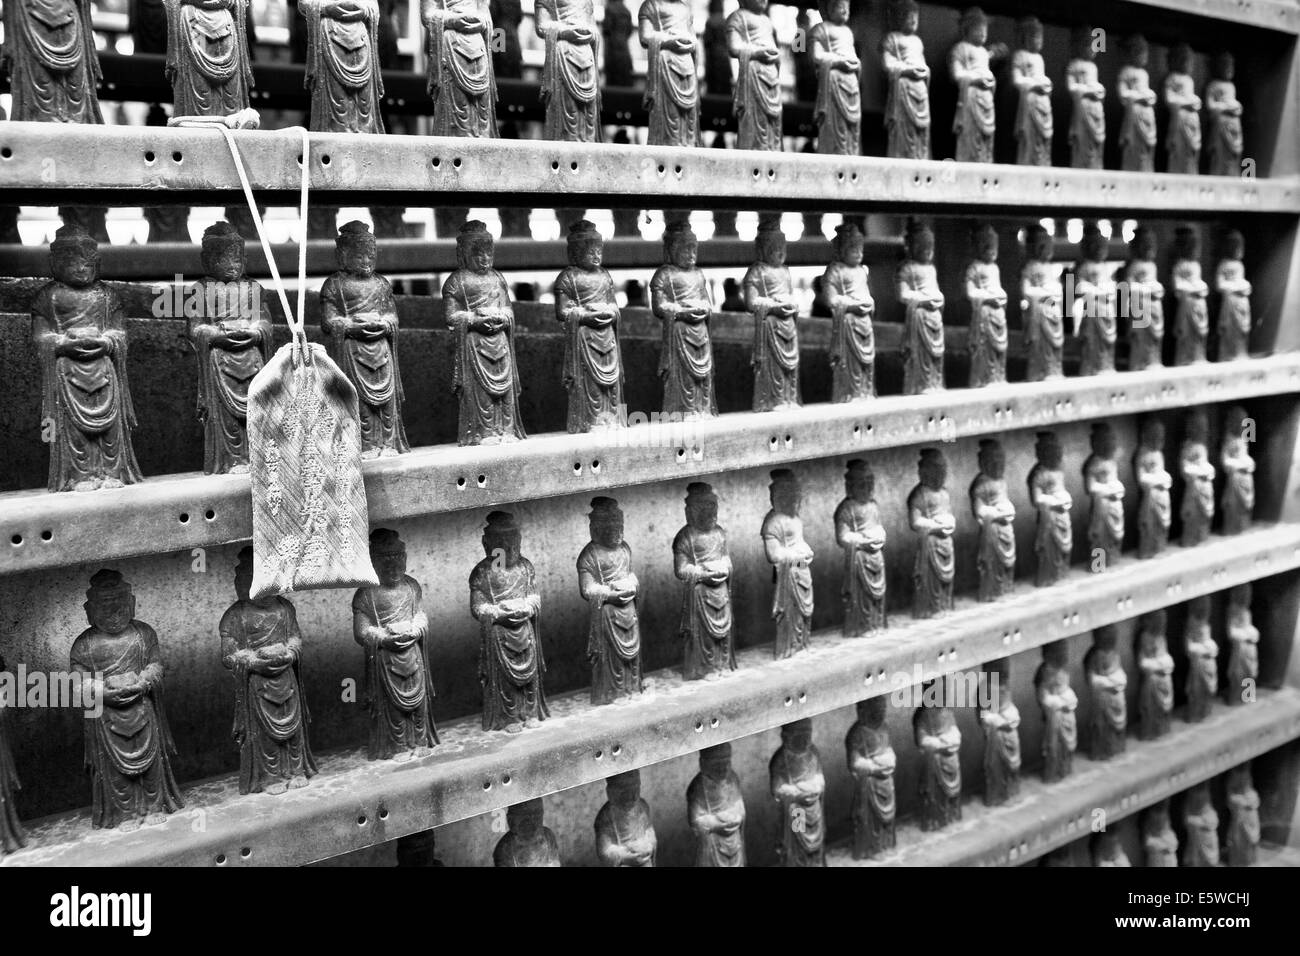 Rows of mini Buddha figurines line the inner sanctum of a Shinto Buddhist temple in Nagano City, Japan, Black and - Stock Image